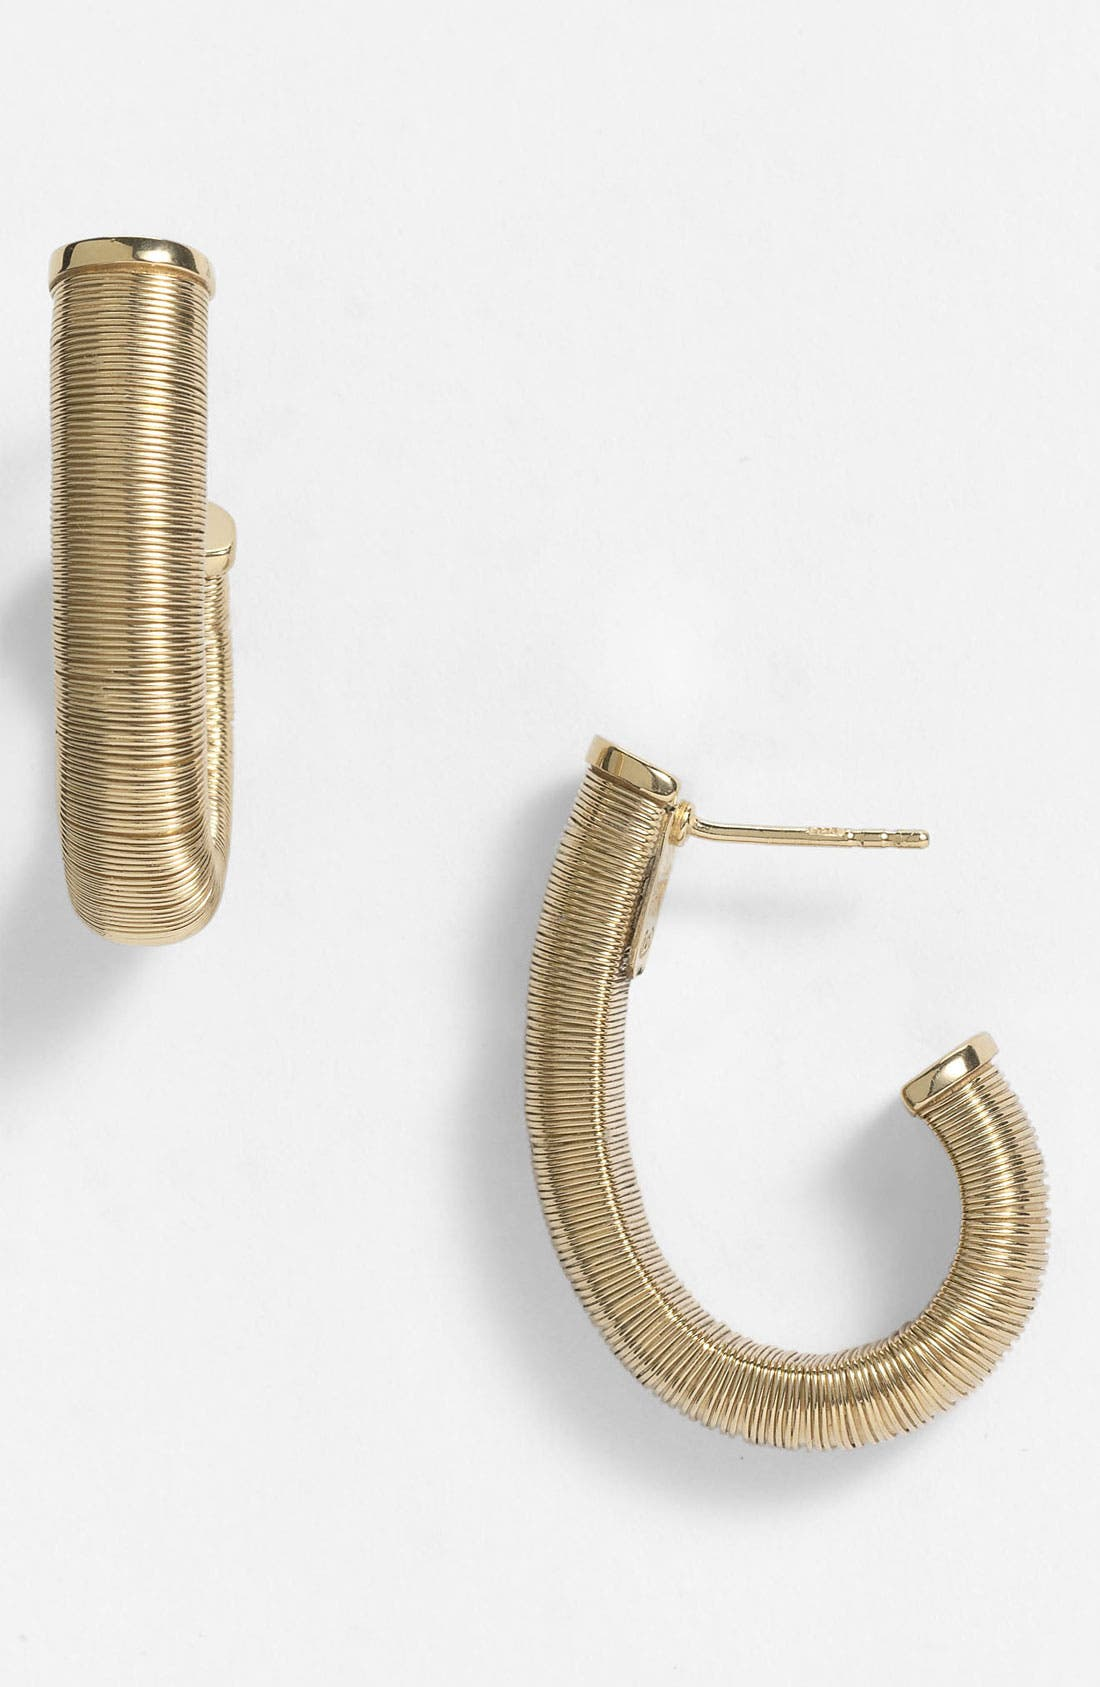 Main Image - Adami & Martucci 'Seta' Hoop Earrings (Nordstrom Exclusive)